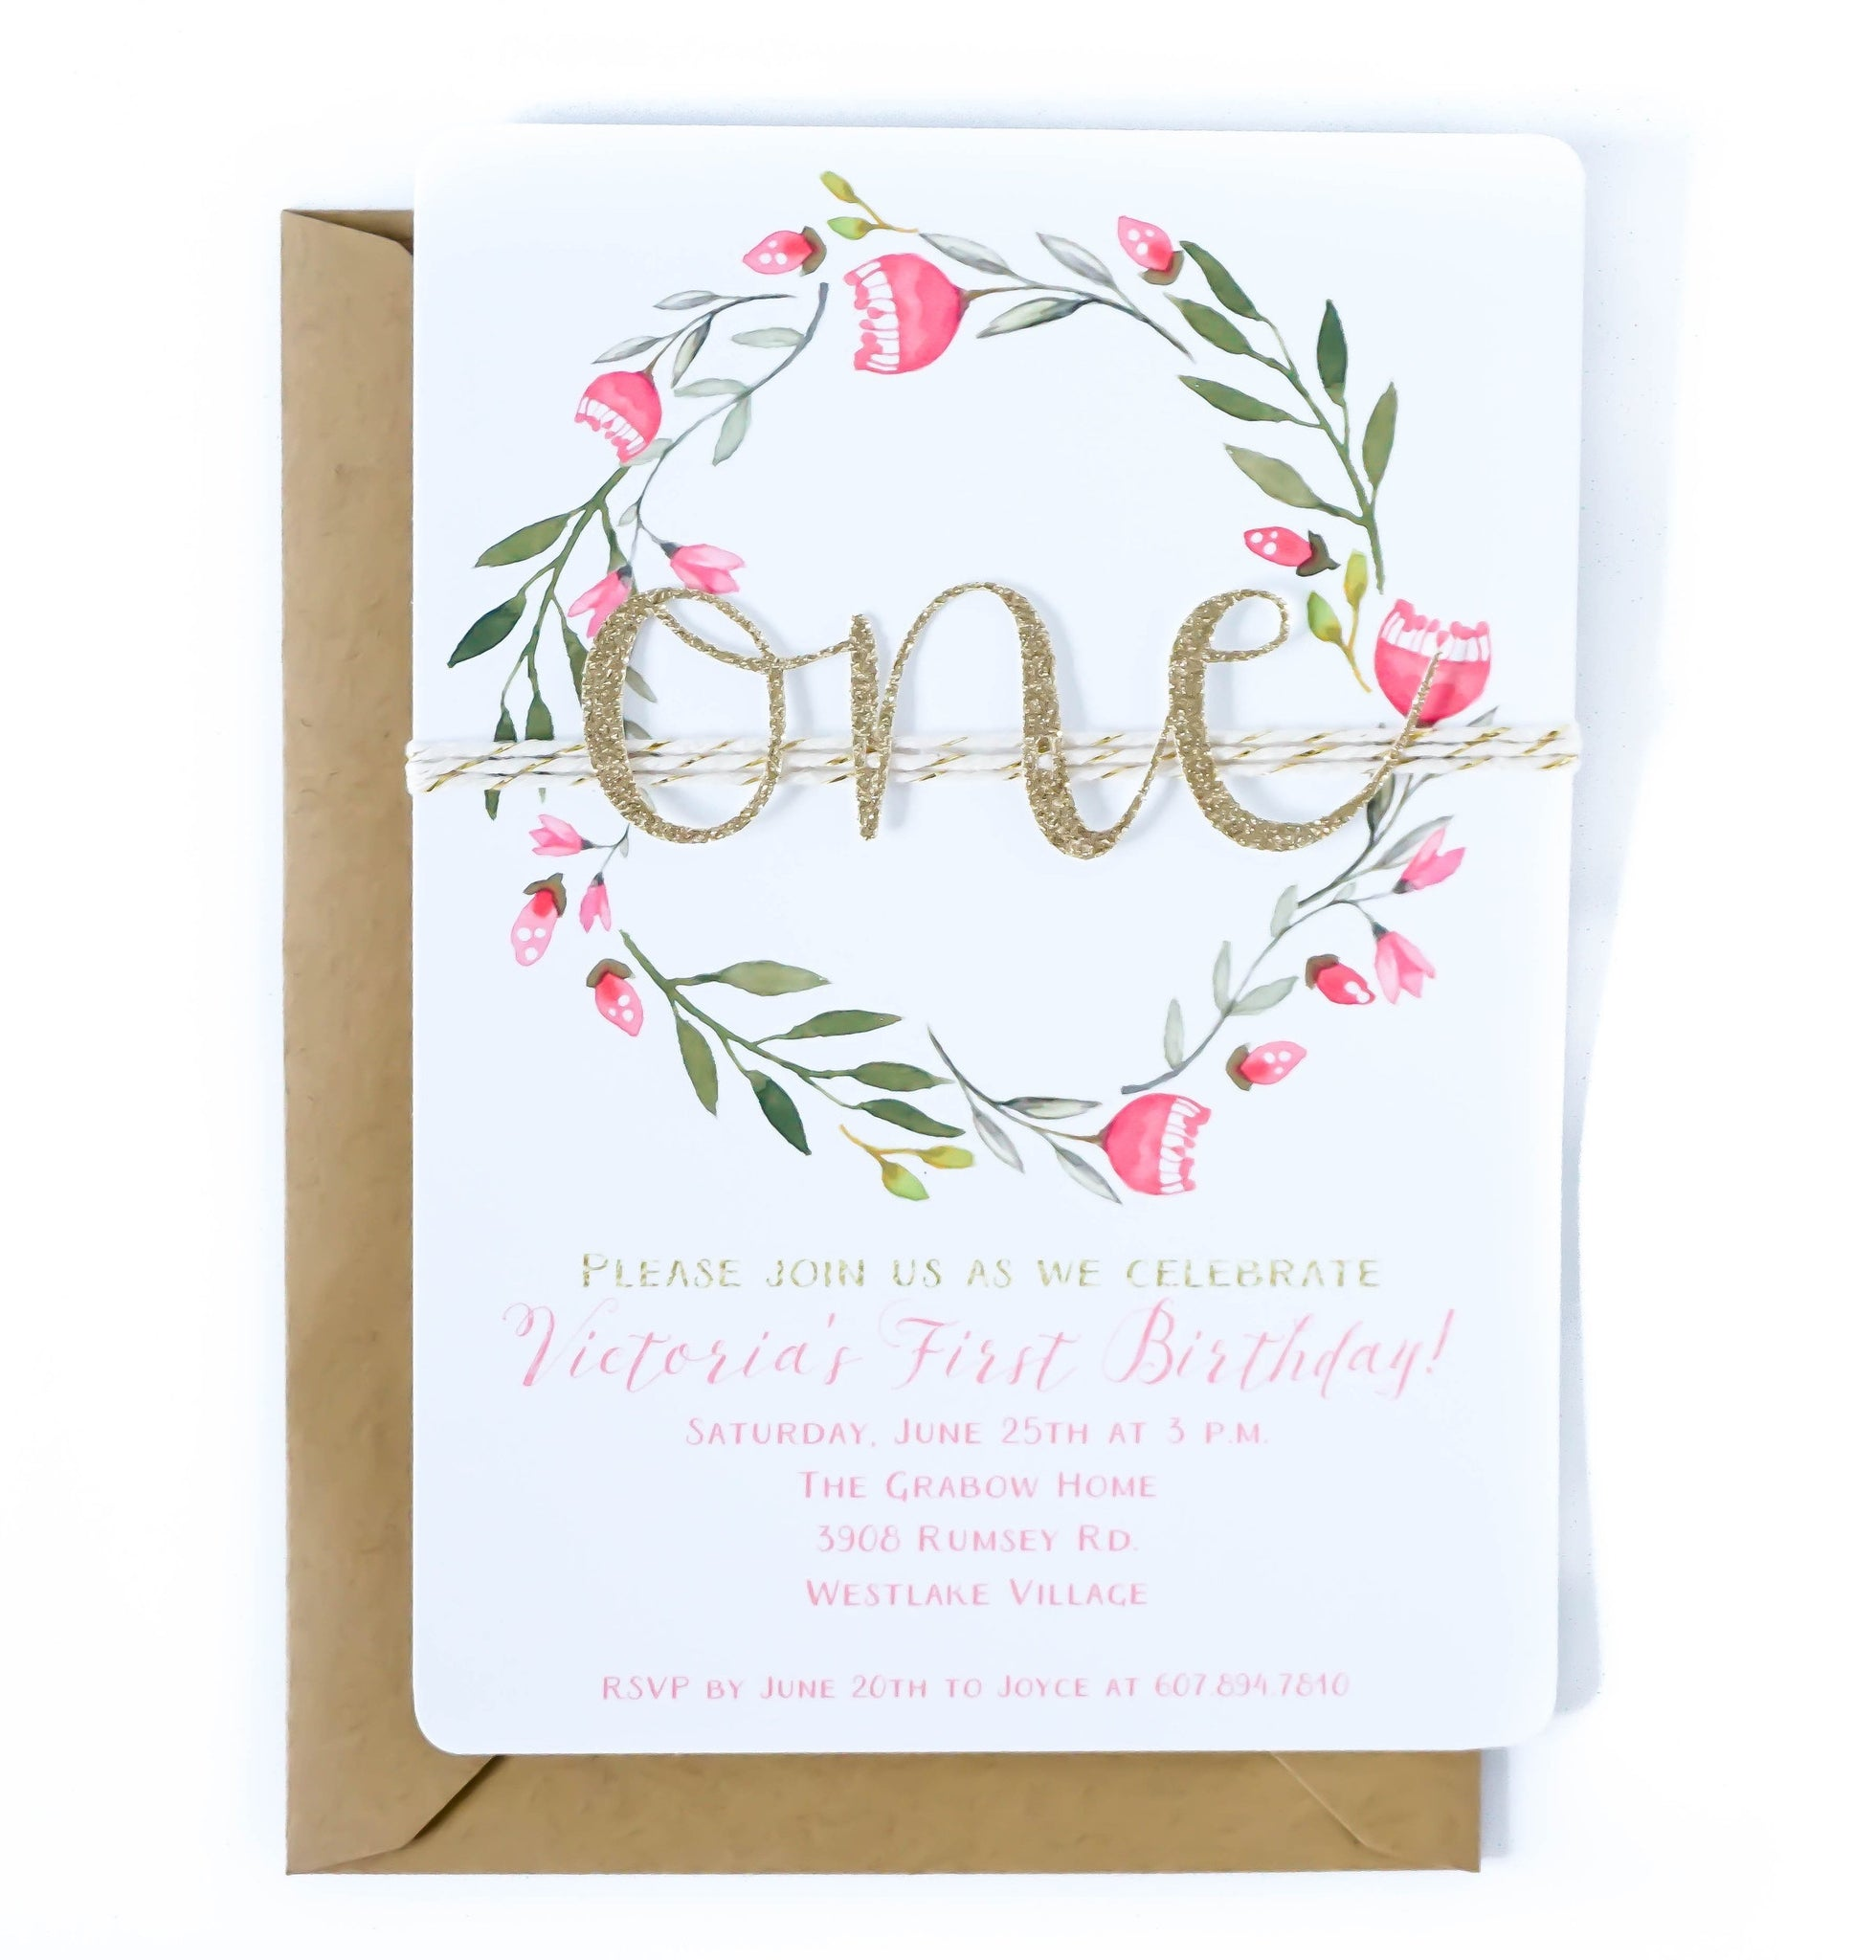 First birthday invitation | Pink Floral ONE